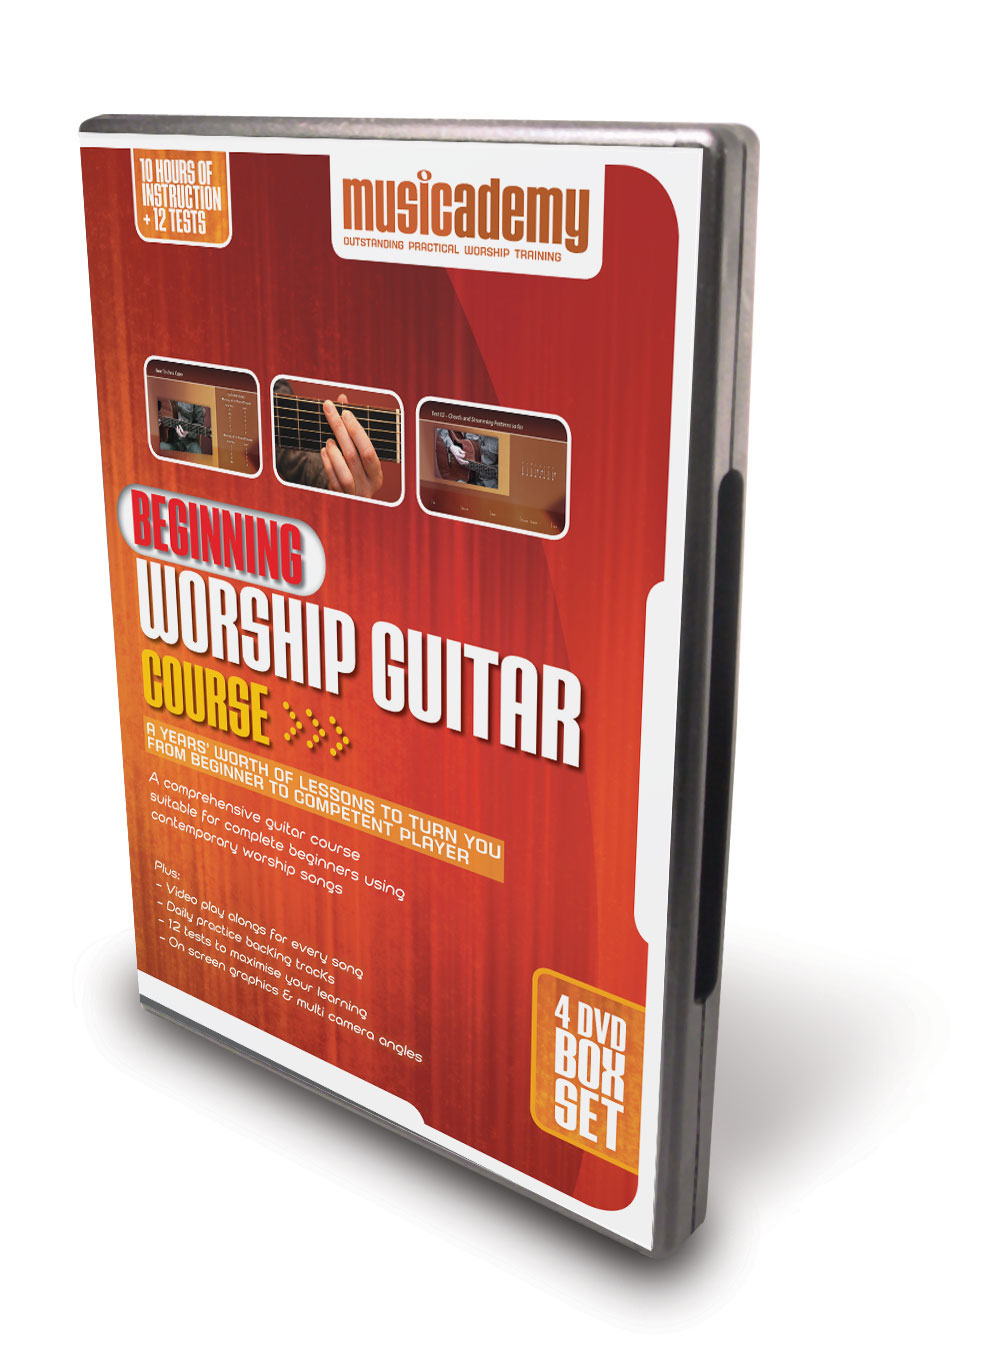 NEW! The Worship Guitar Collection